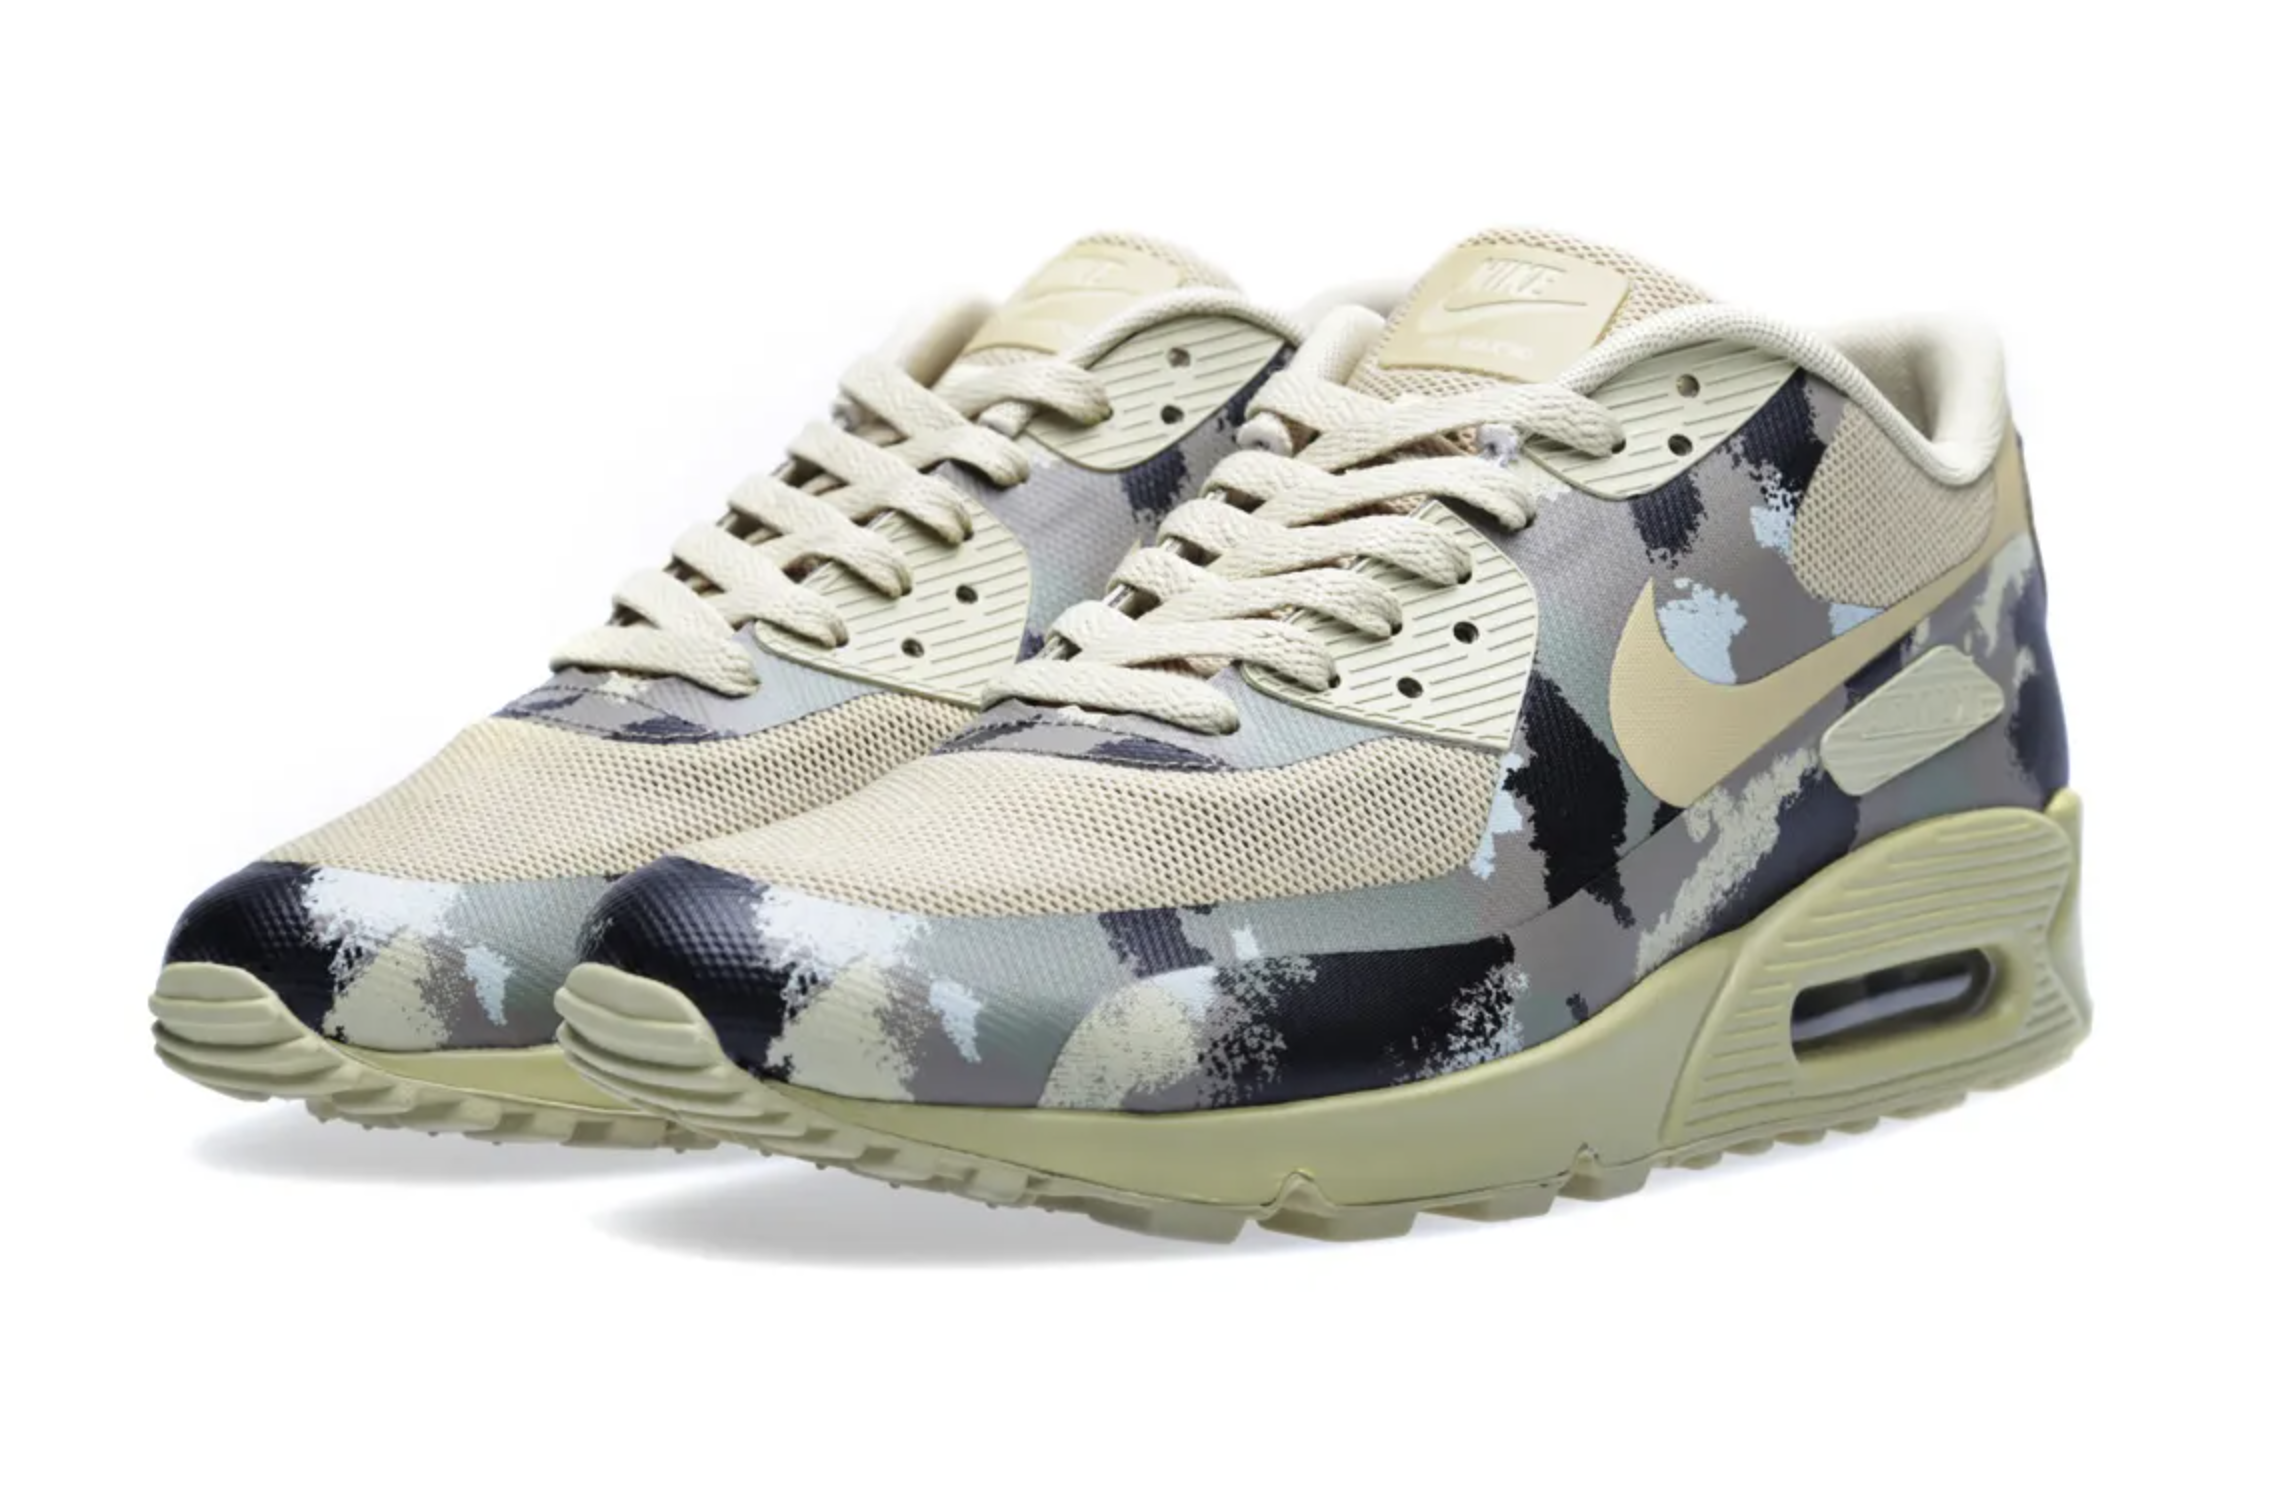 Nike Air Max 90 Country Camo Italy (2013)